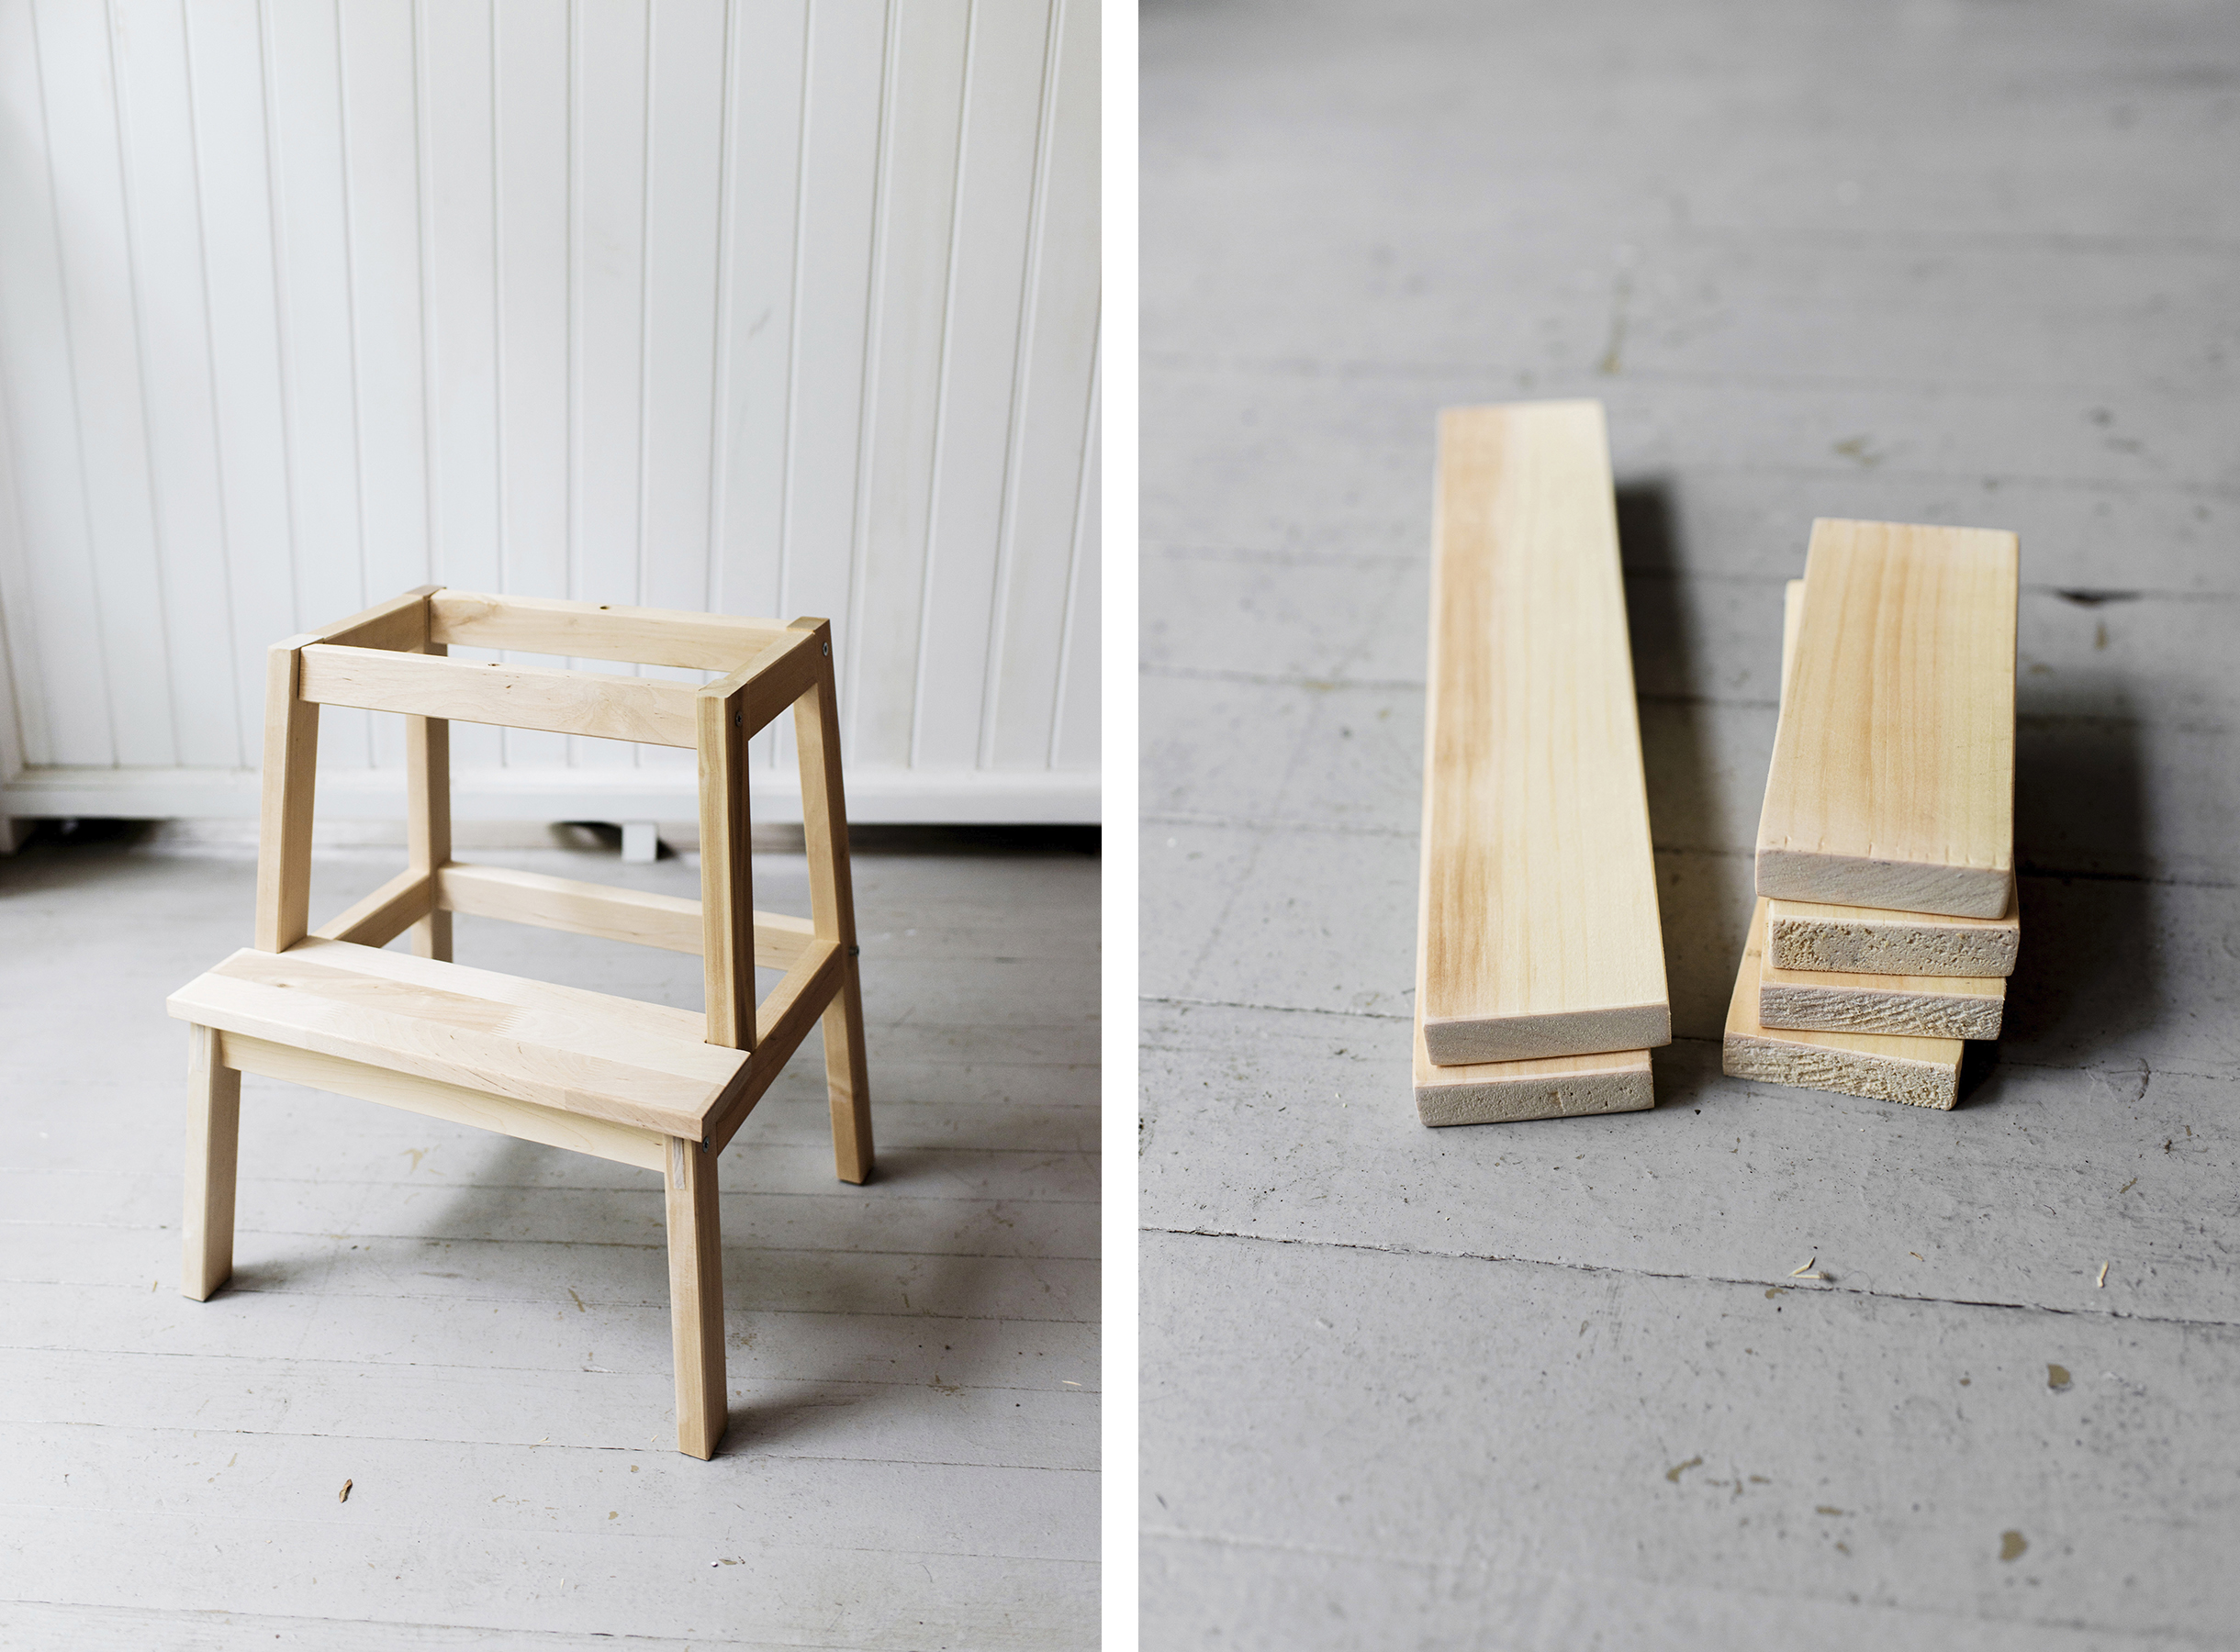 Ikea Hack Toddler Learning Tower Using A Bekväm Stool Tutorial Step By